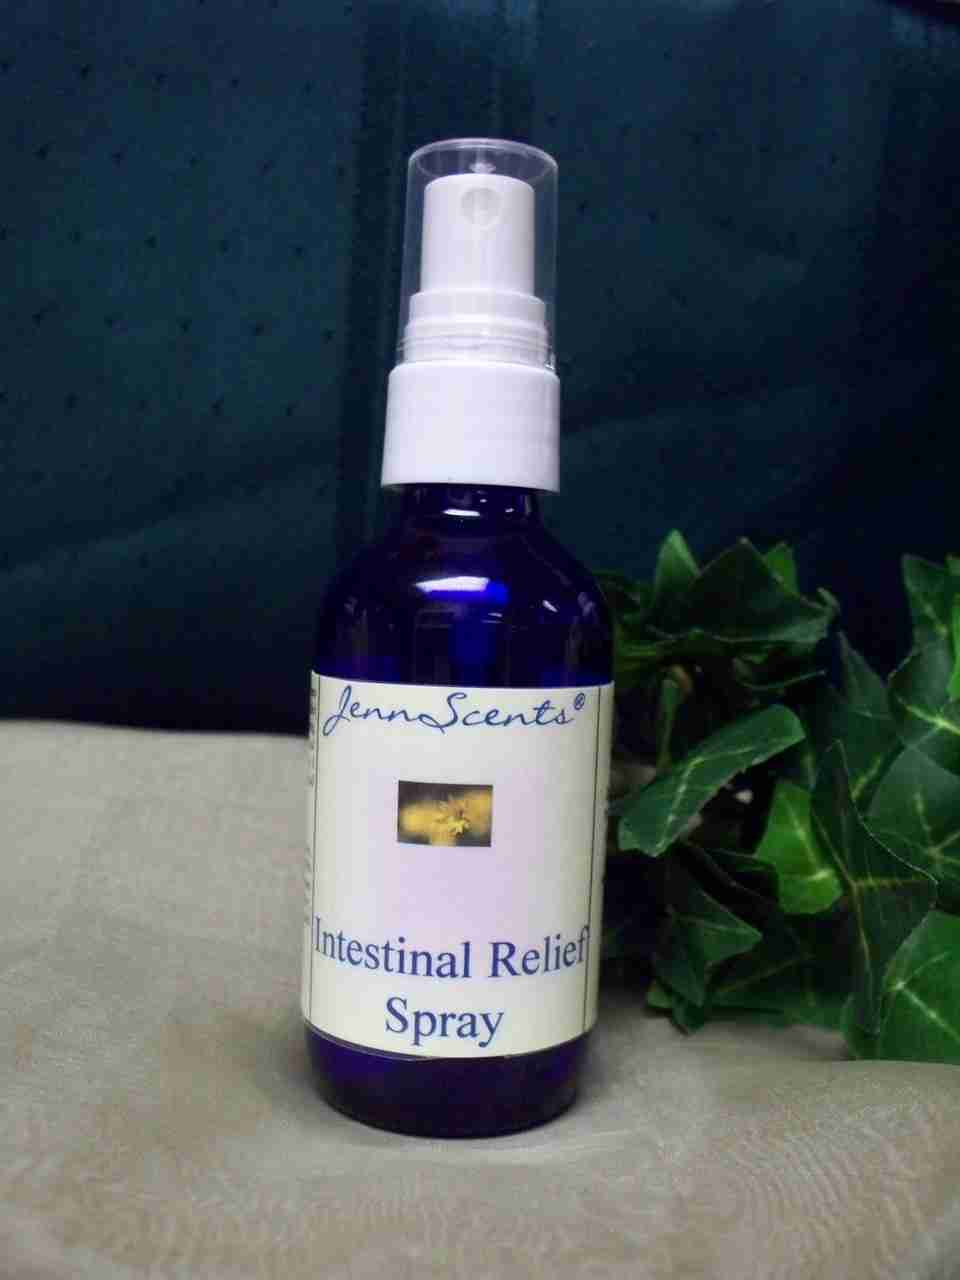 Intestinal Relief Spray